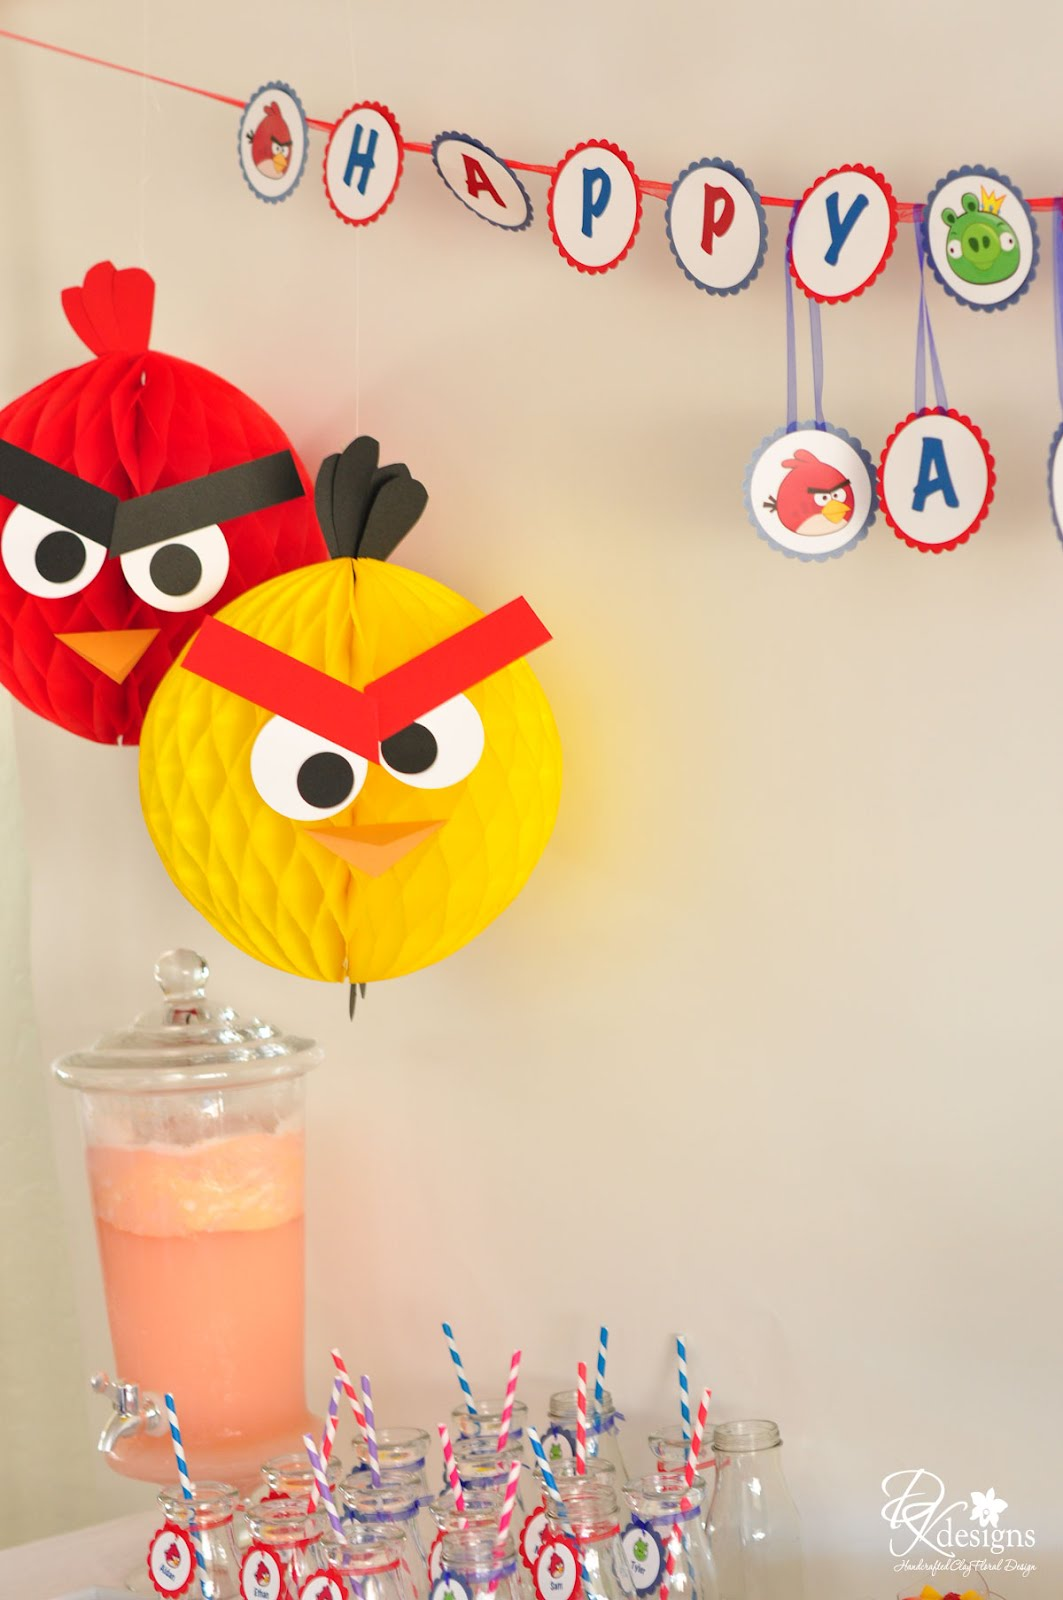 Dk designs my son 39 s angry birds themed birthday party photos for Angry birds party decoration ideas